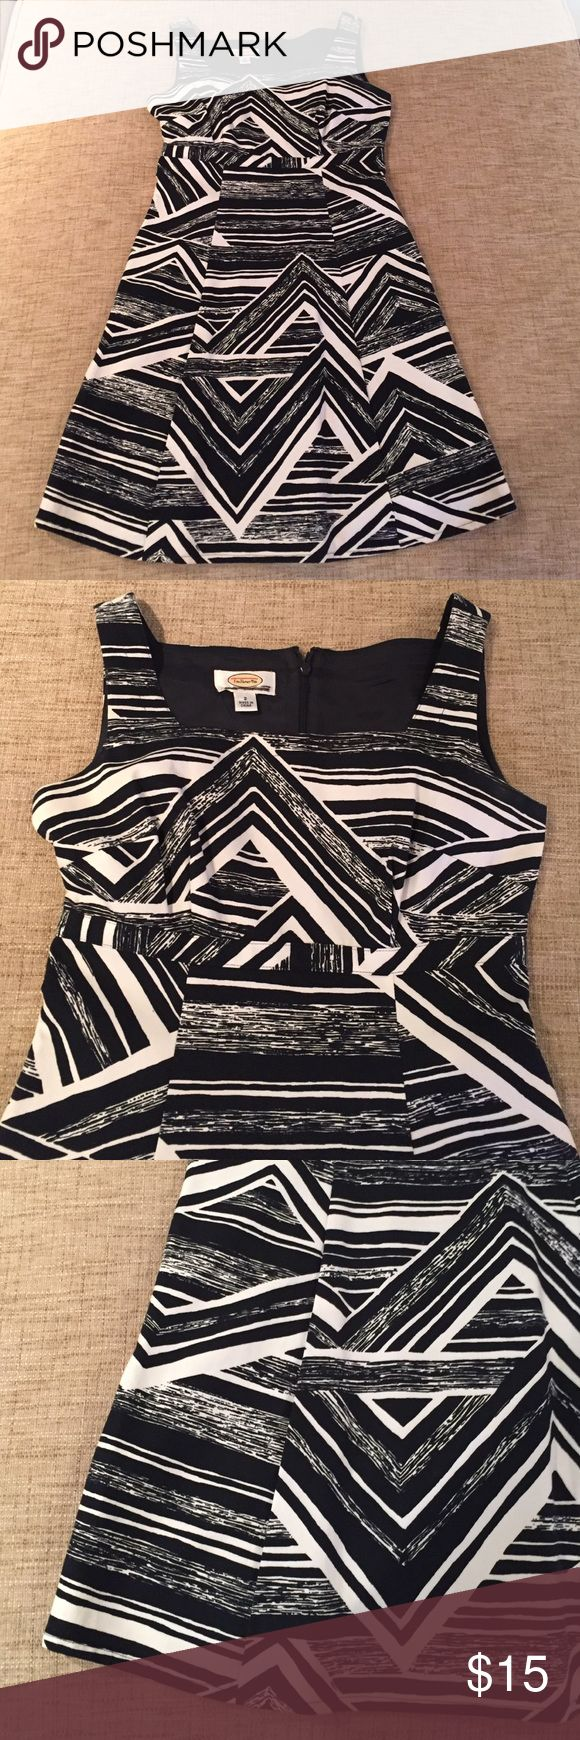 Aztec print dress Talbots petite Aztec print dress. In excellent condition, very dark navy (almost black) and white print. Talbots Dresses